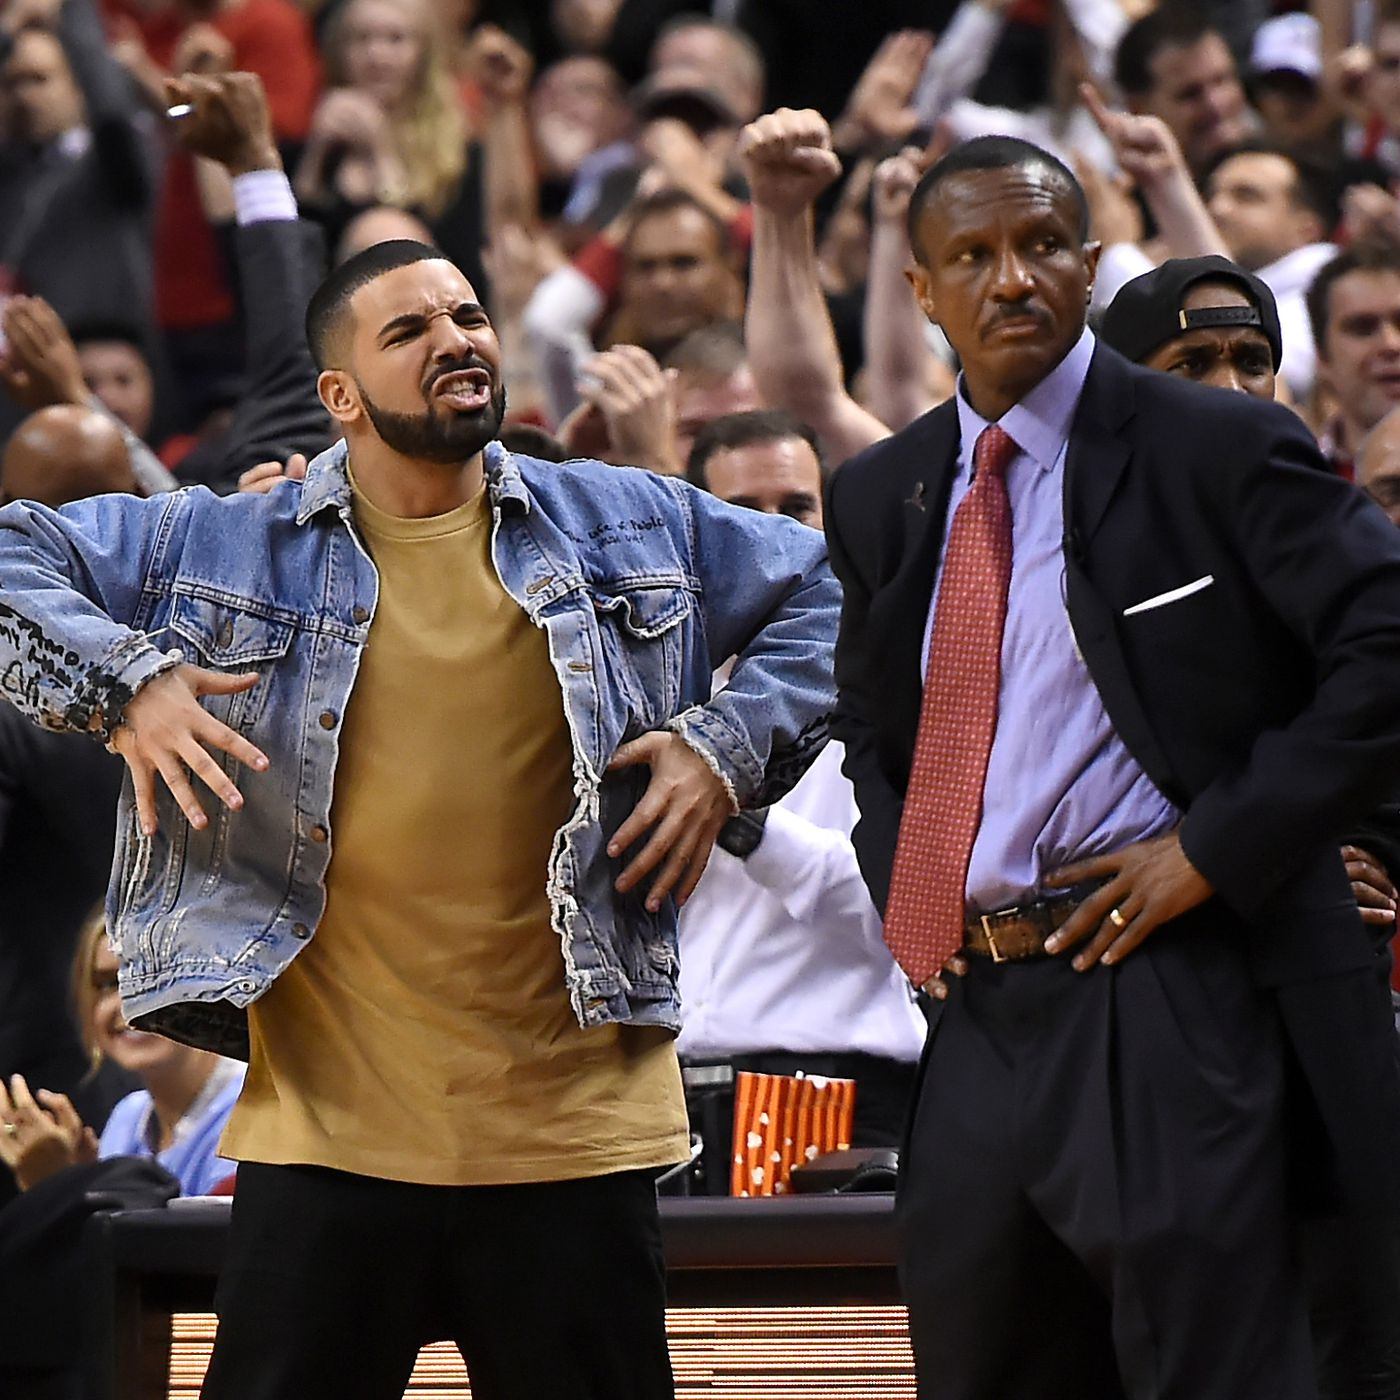 Drake is hosting the NBA Awards, so here are his best lyrics